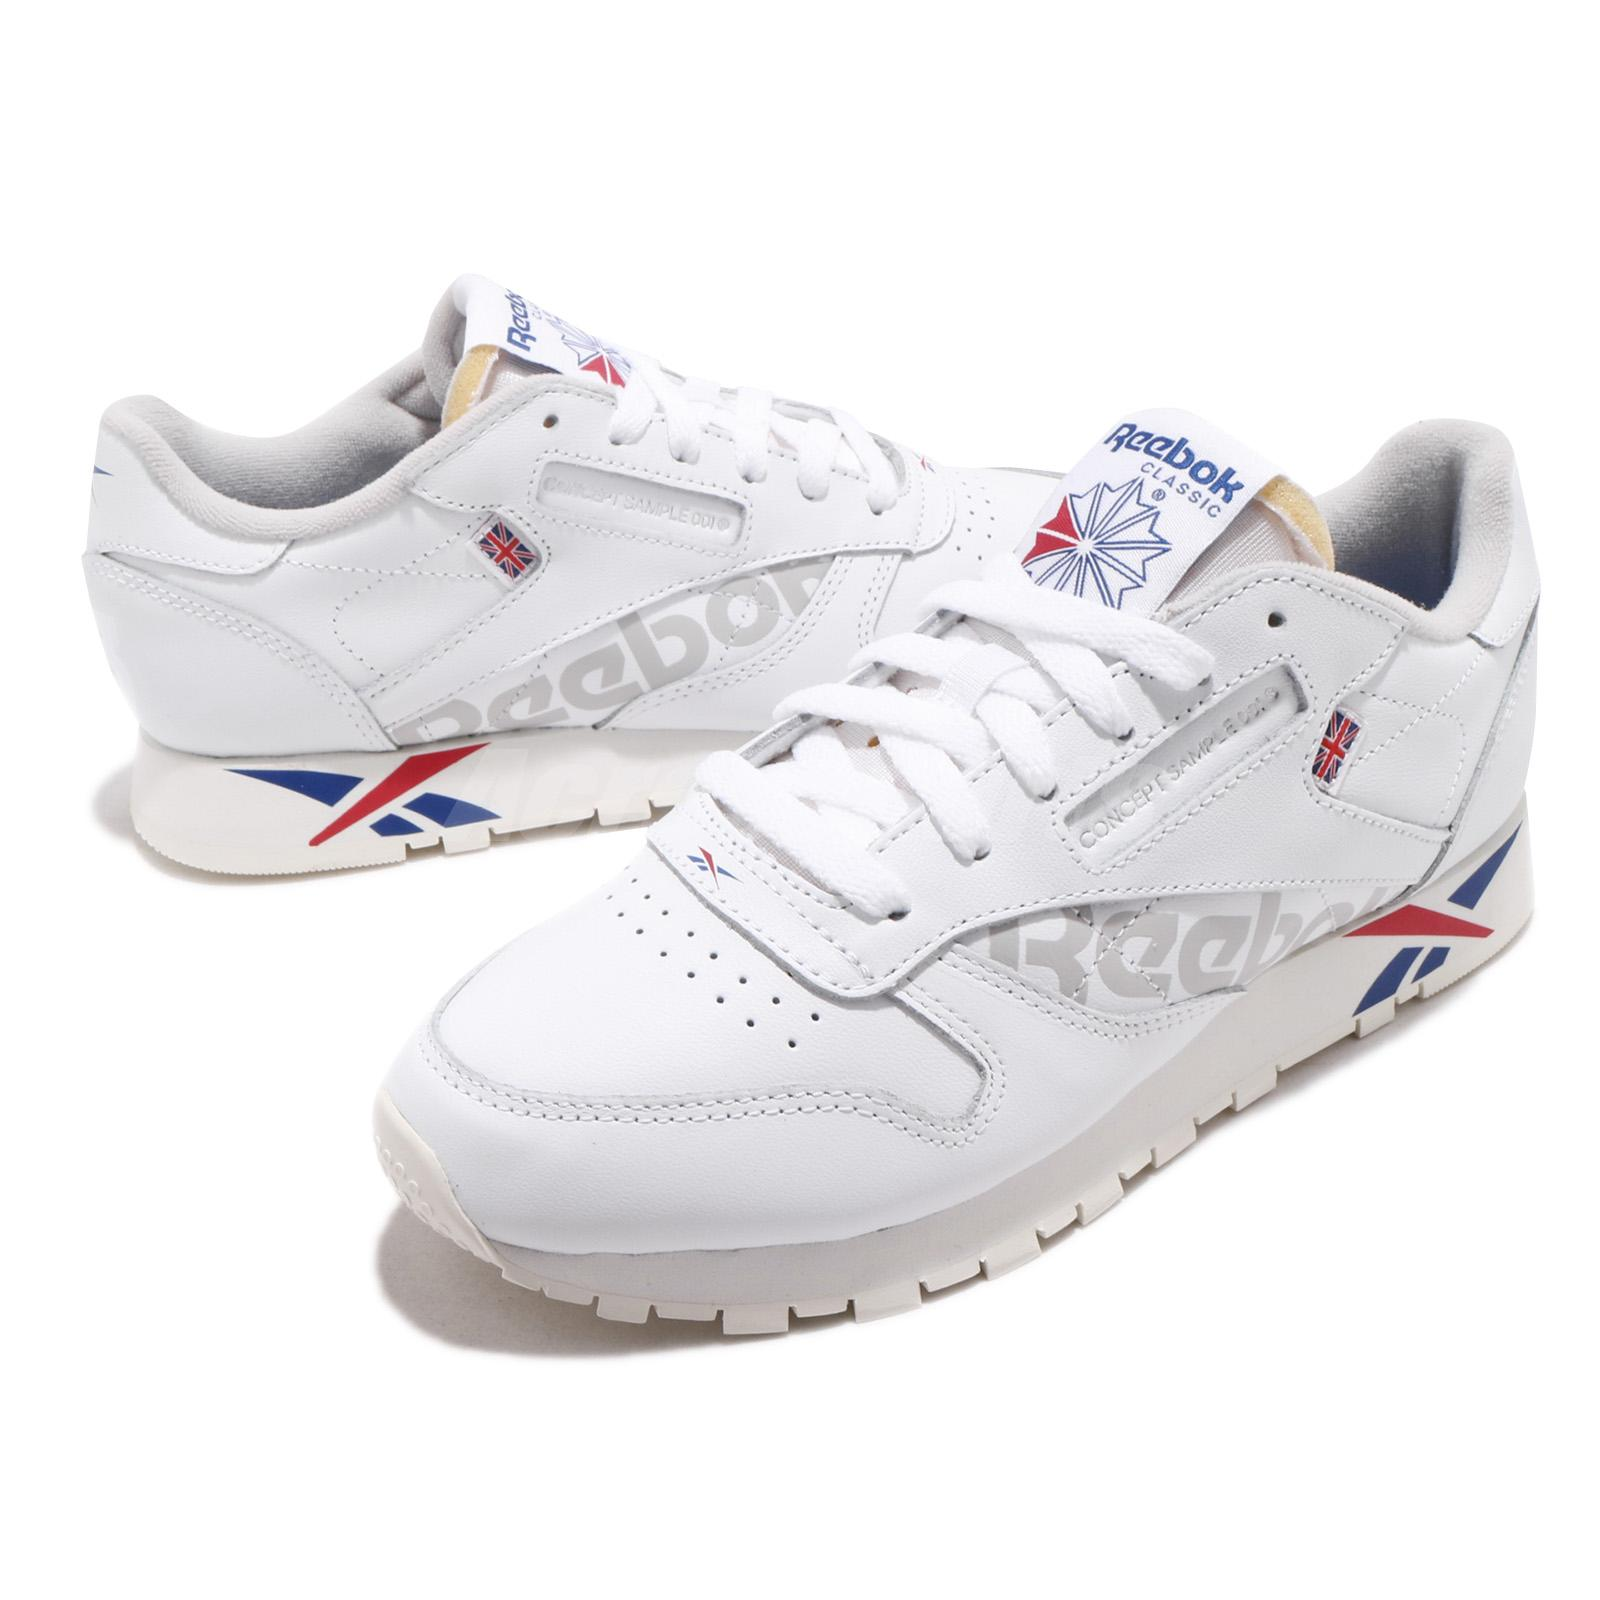 3c9f452a0de Details about Reebok Classic Leather Altered MU White Dark Royal Red Grey  Men Shoes DV4629